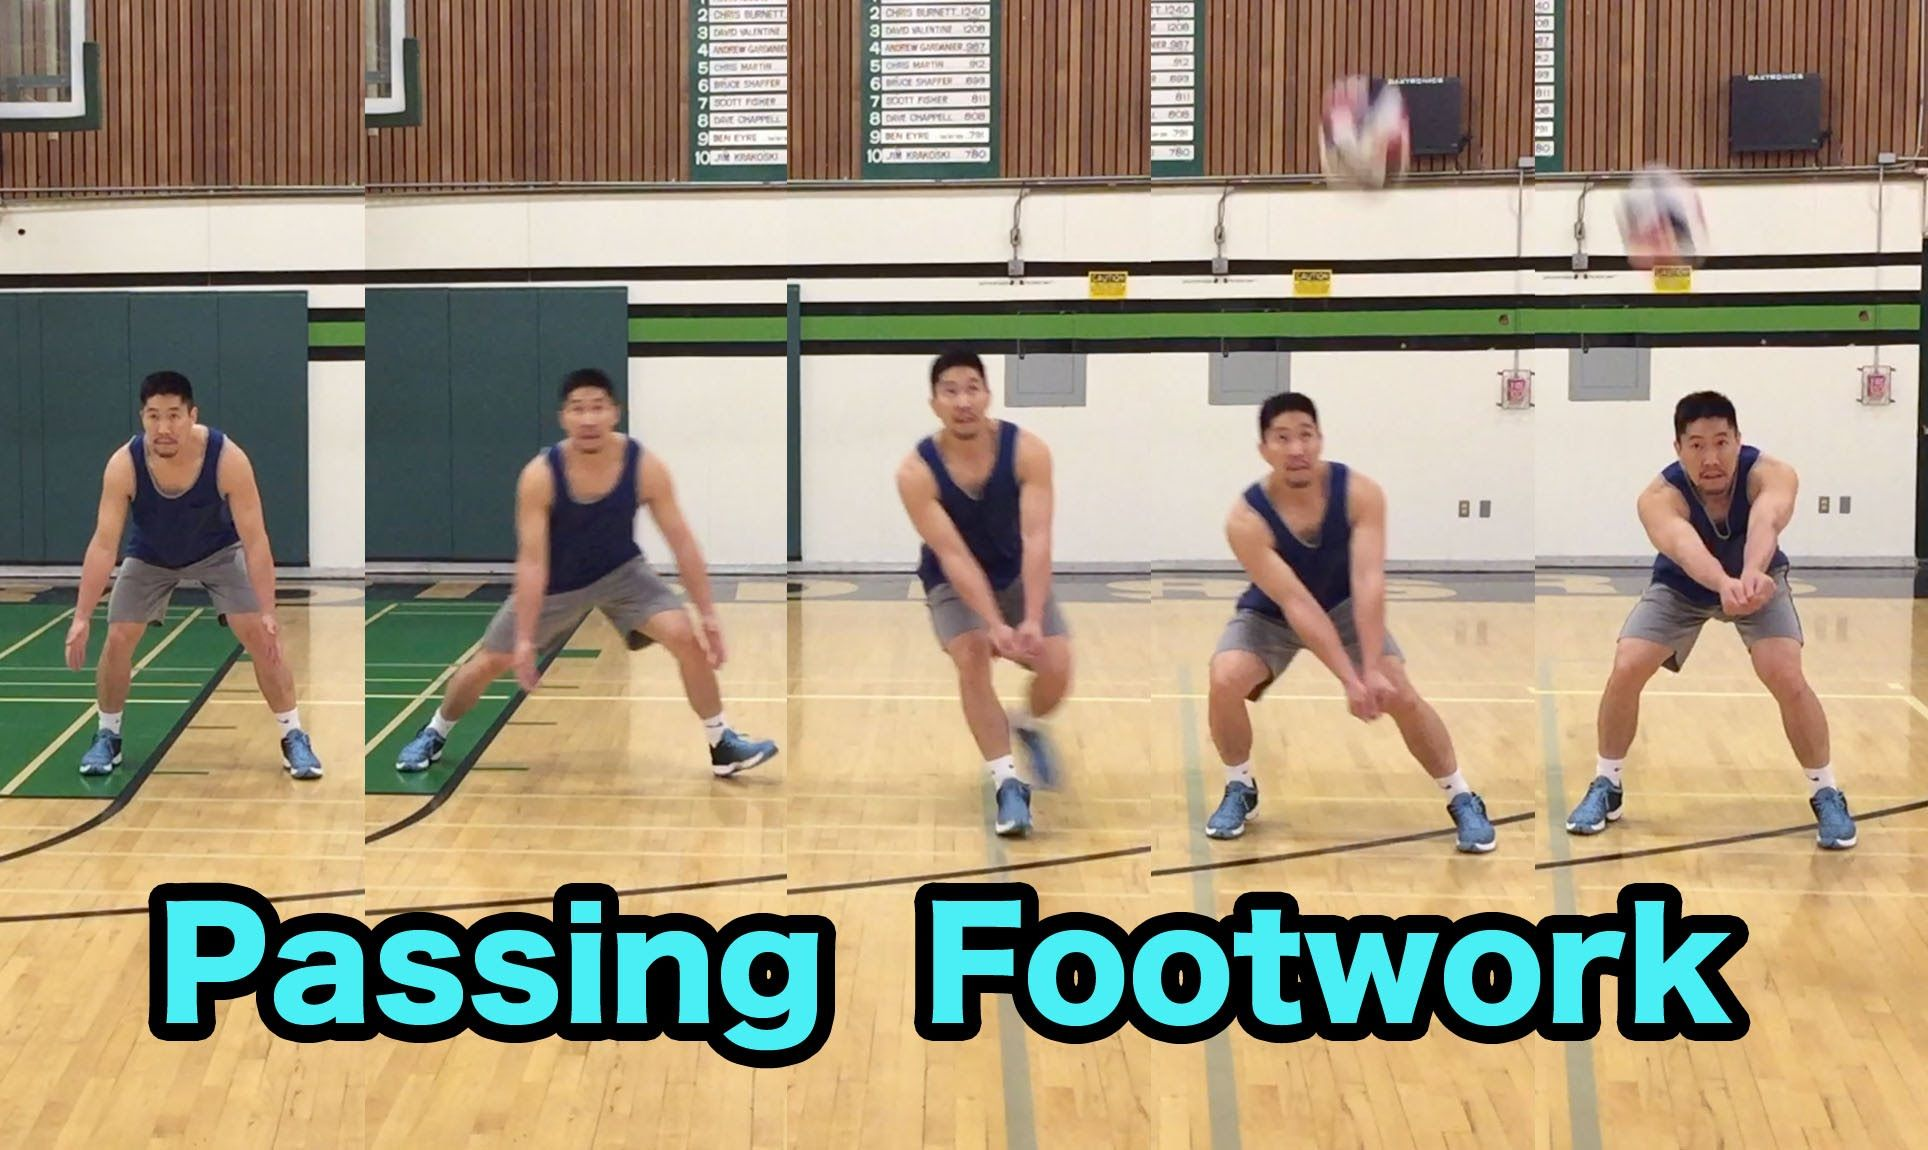 Passing Footwork How To Pass A Volleyball Tutorial Part 5 6 Coaching Volleyball Volleyball Workouts Volleyball Practice